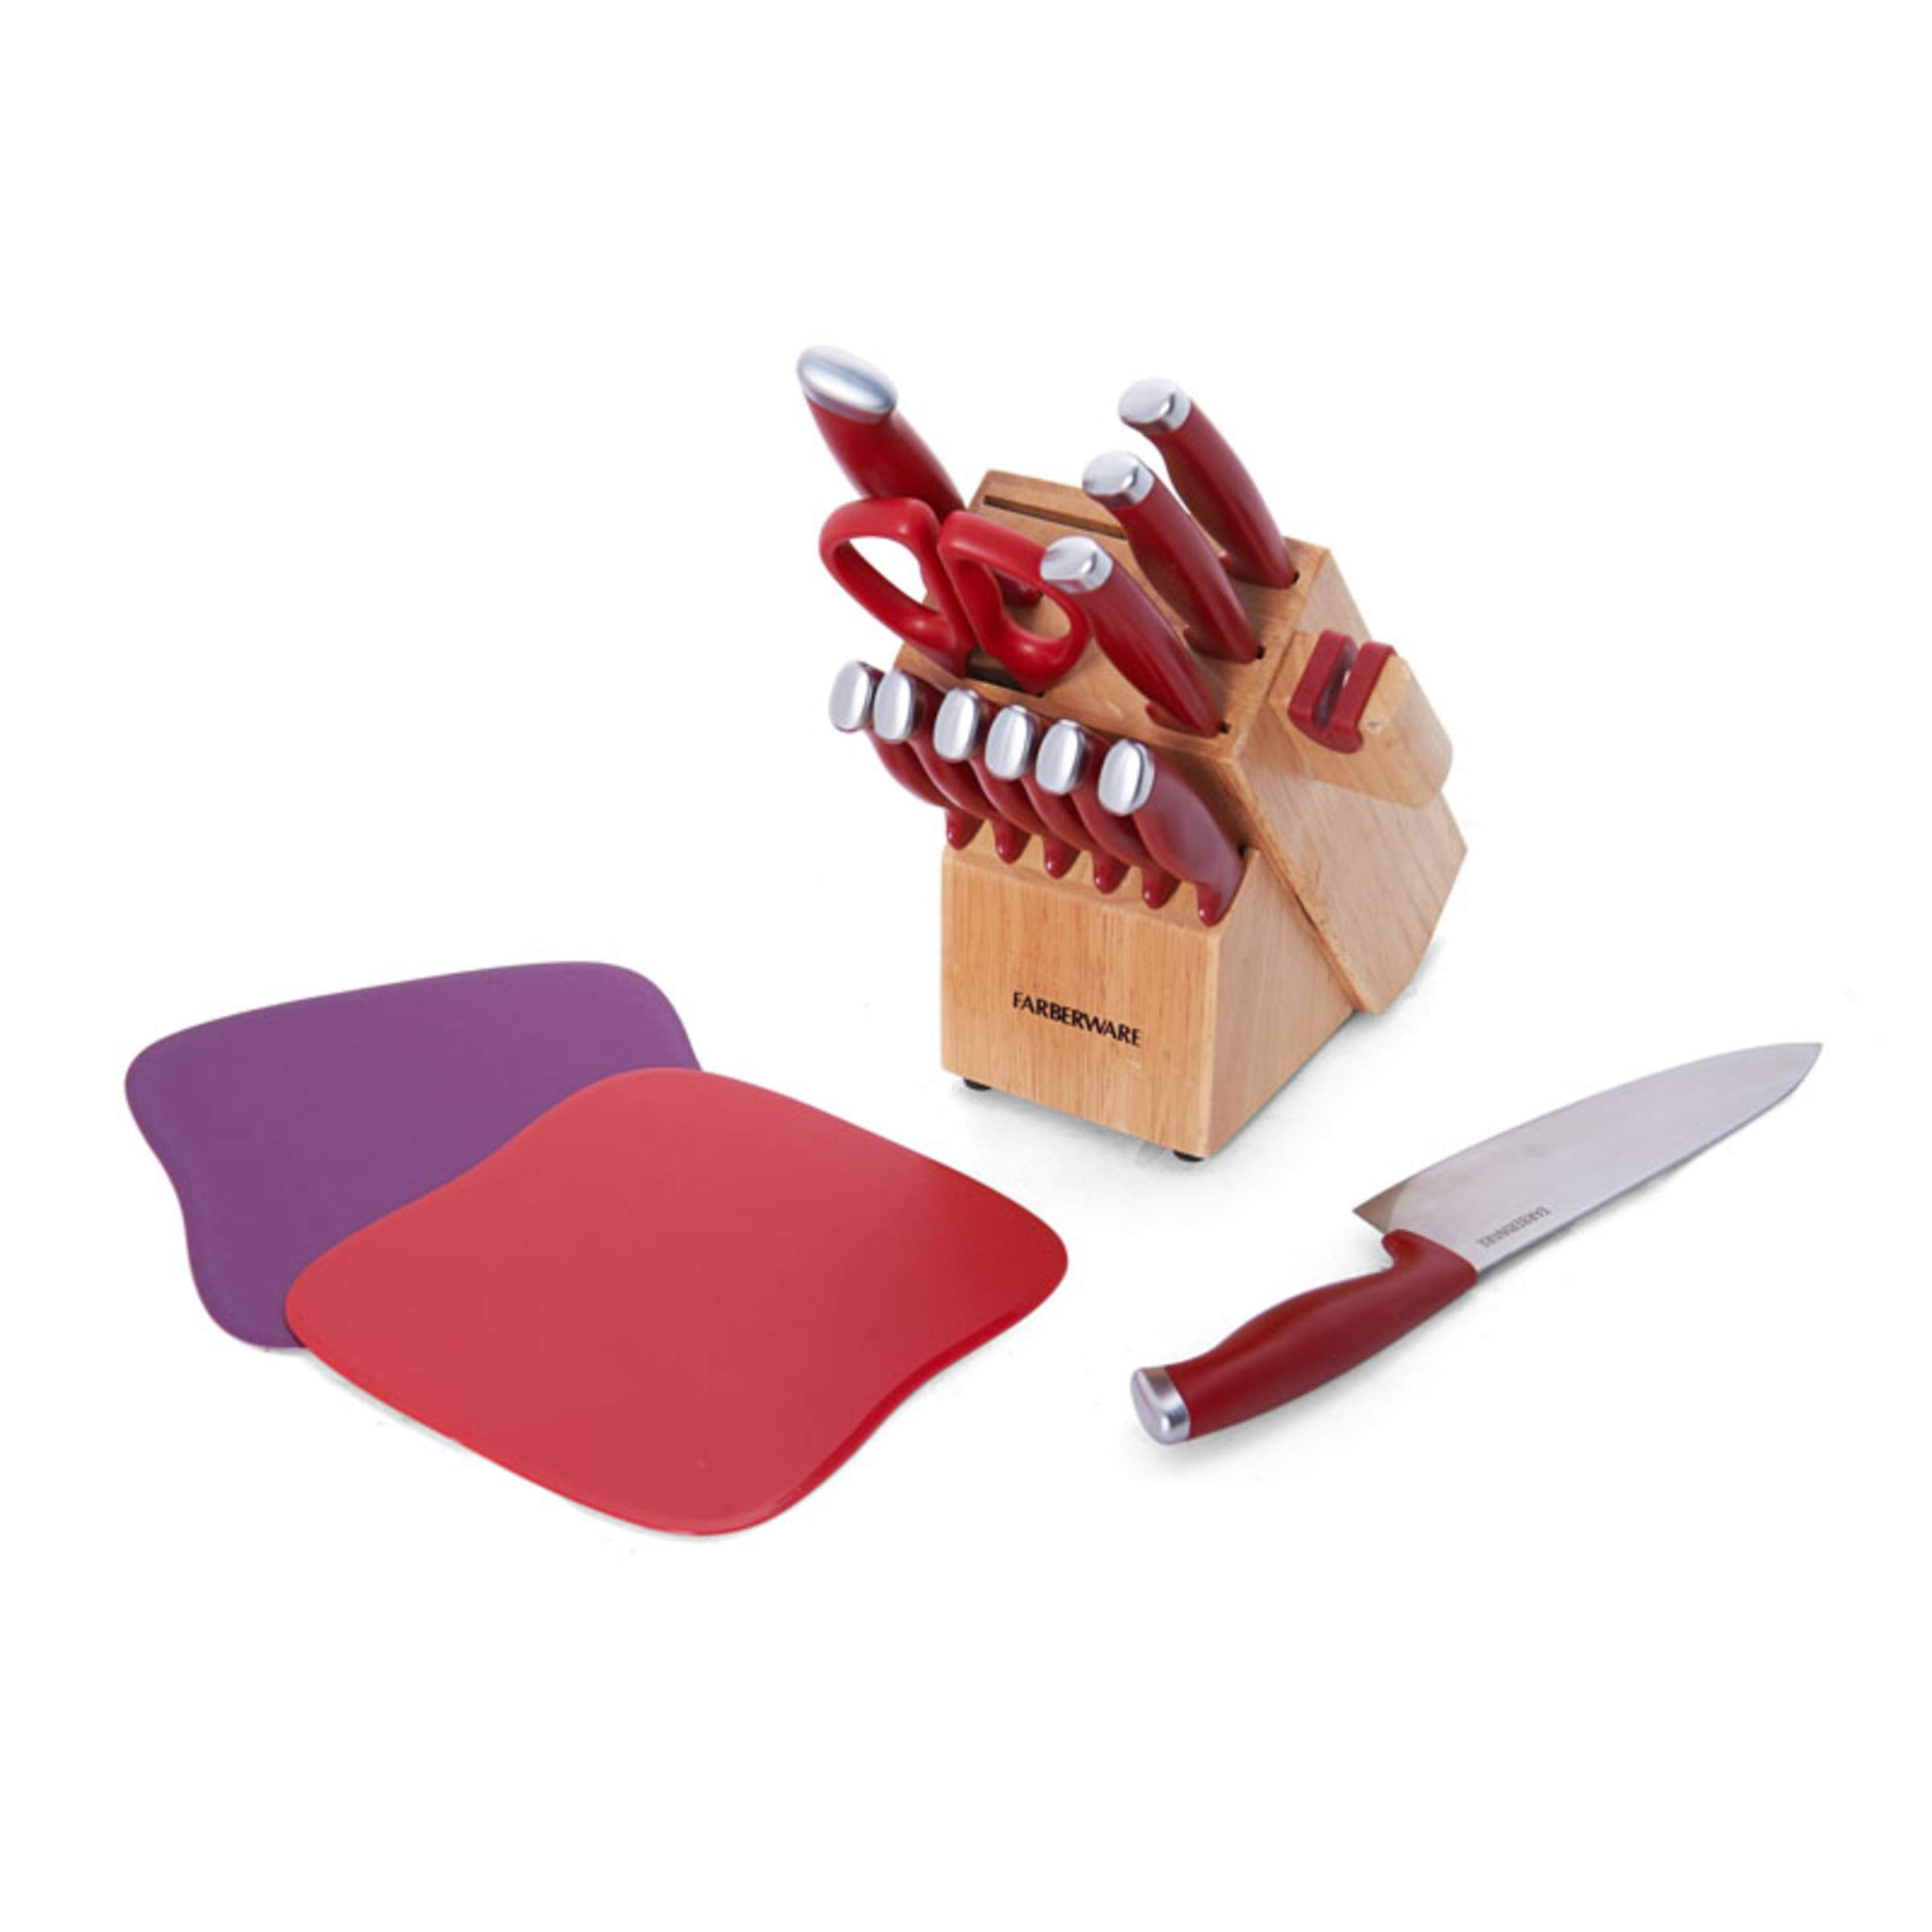 Farberware 5217309 Edgekeeper Delrin Cutlery Set, 15-Piece, Red